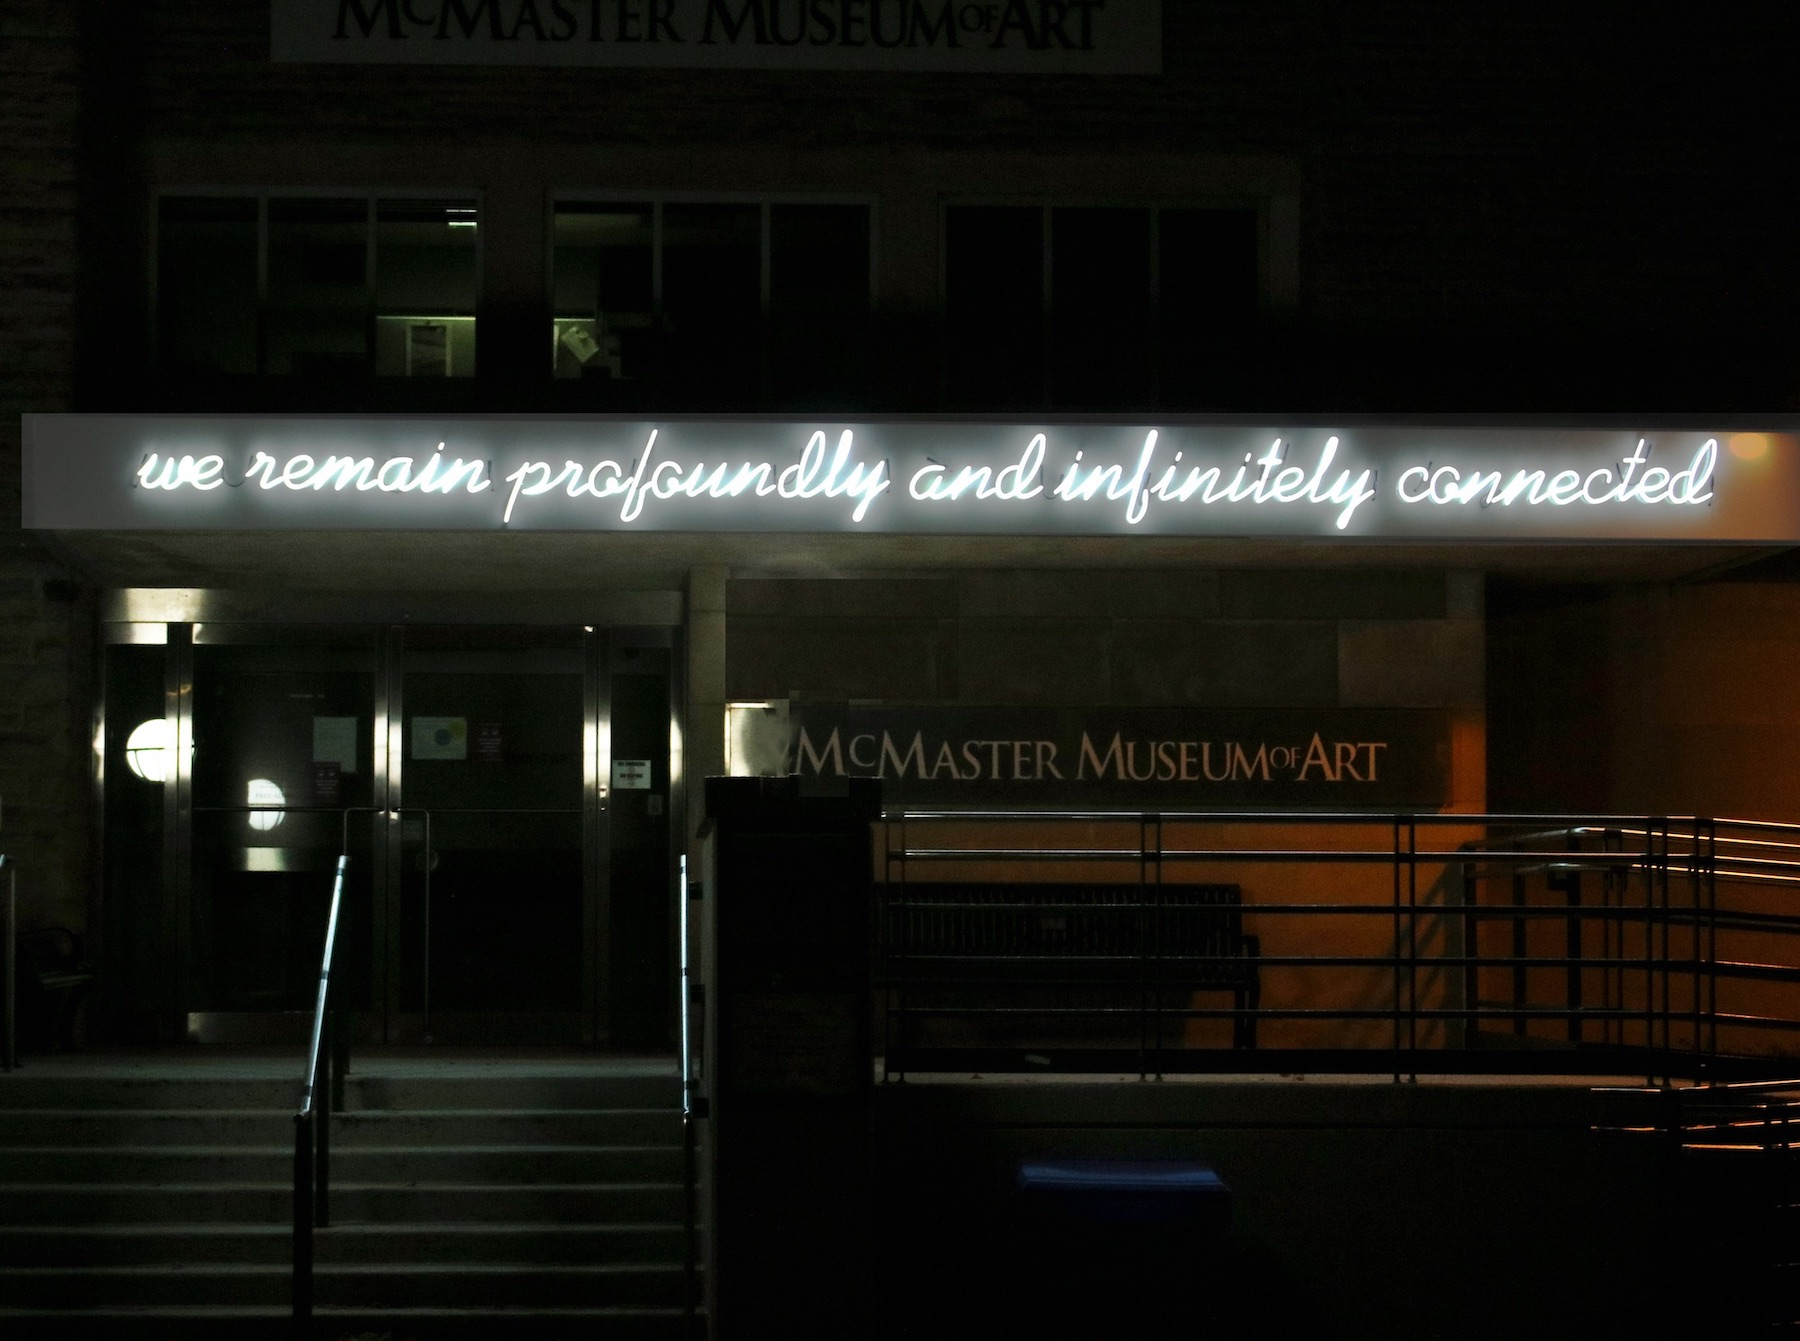 Hiba Abdallah neon art installation on front of Museum building, view from October 2020.